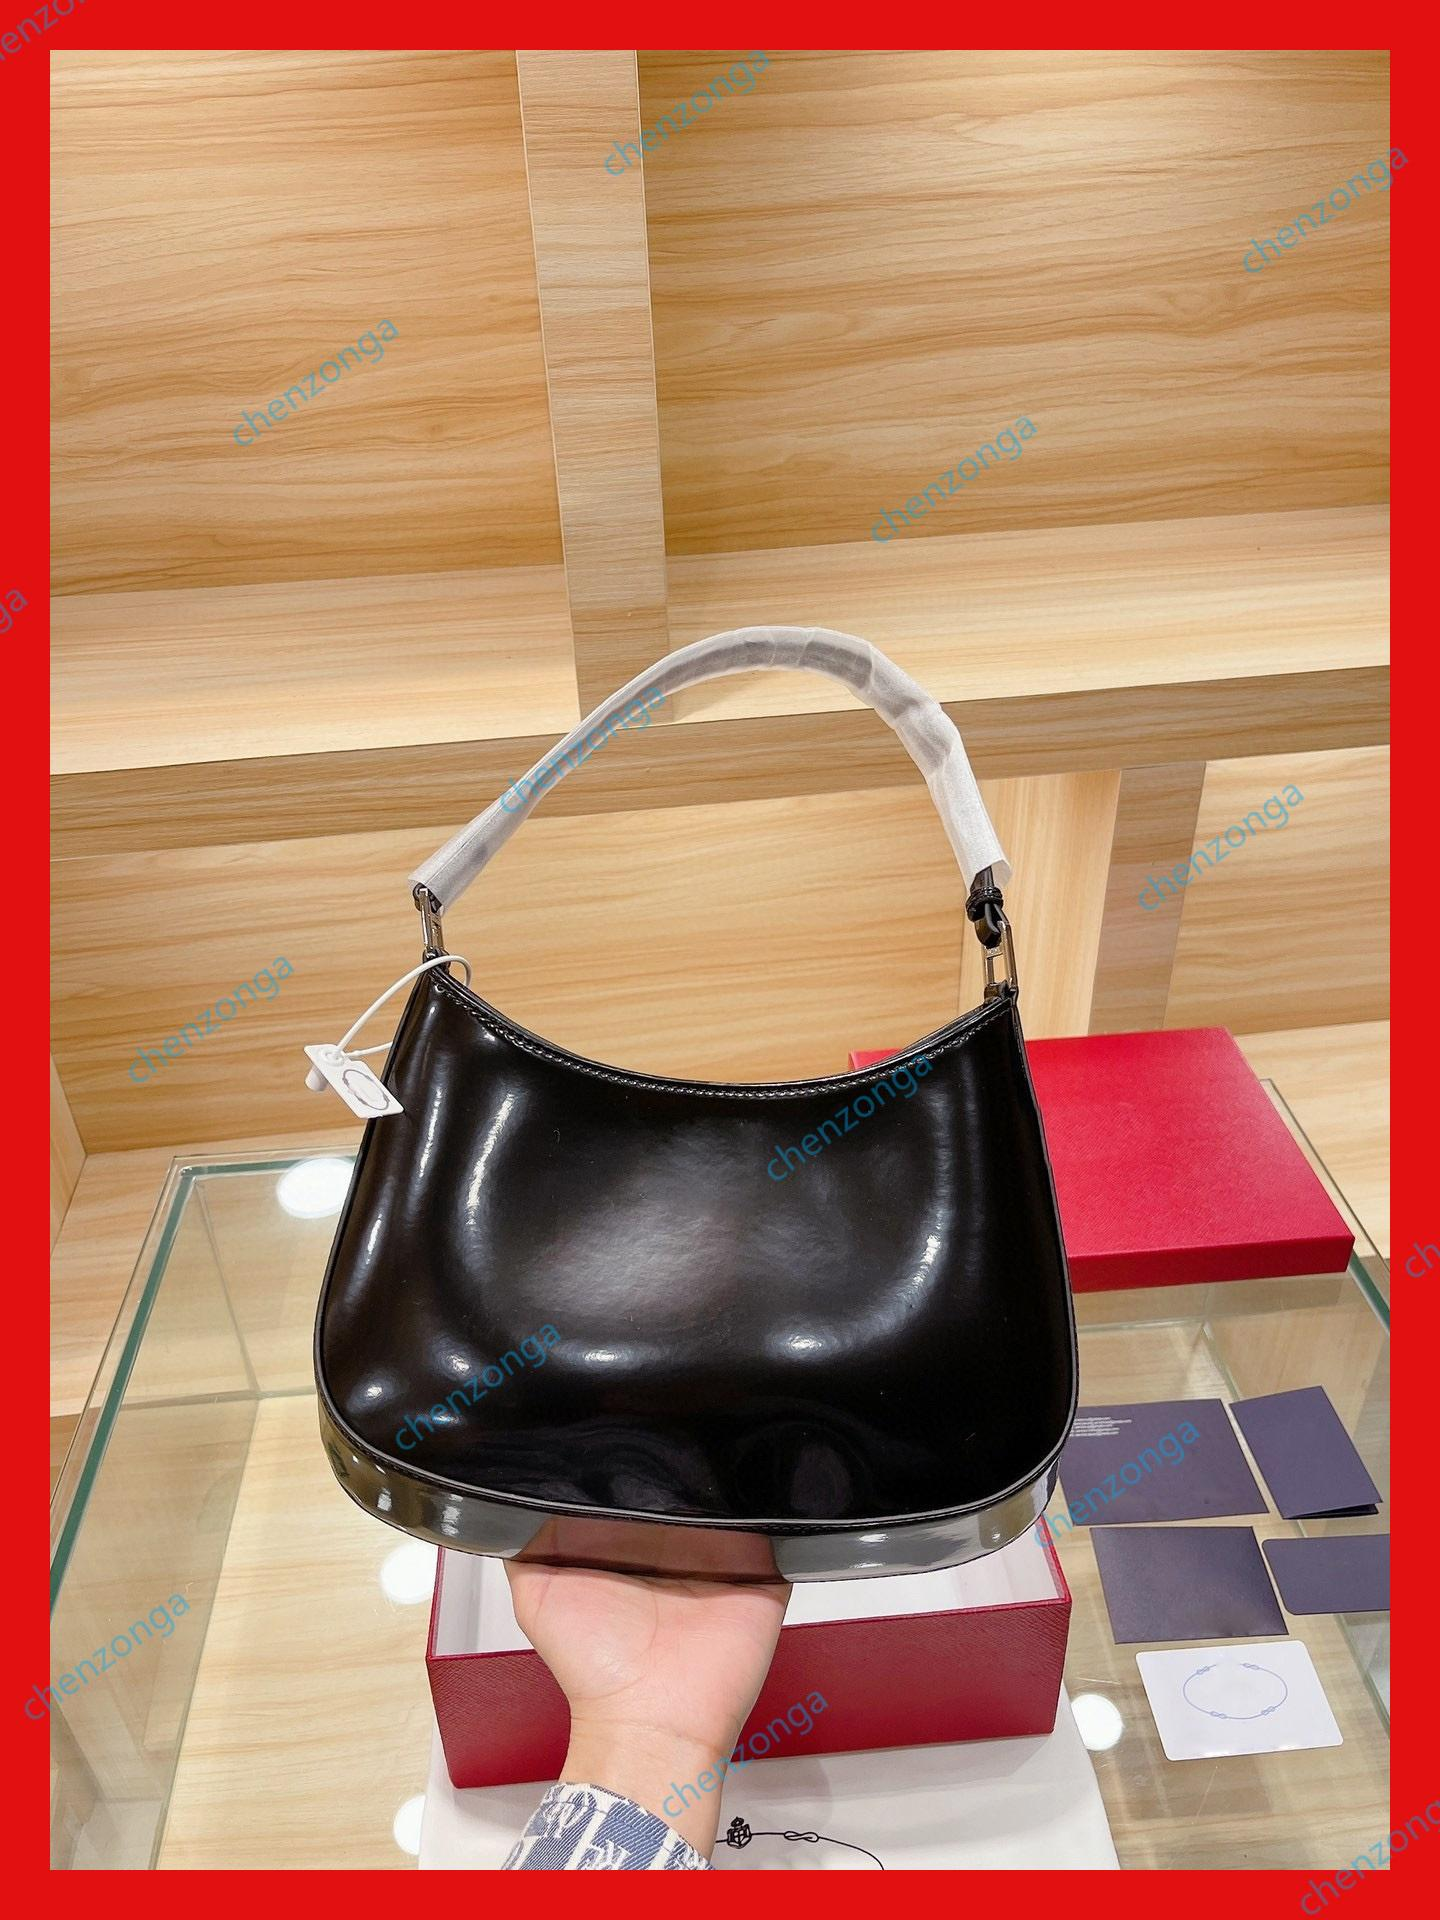 cowhide handbag patent leather armpit bags small net red bag eternal classic light fashion trendy musthave